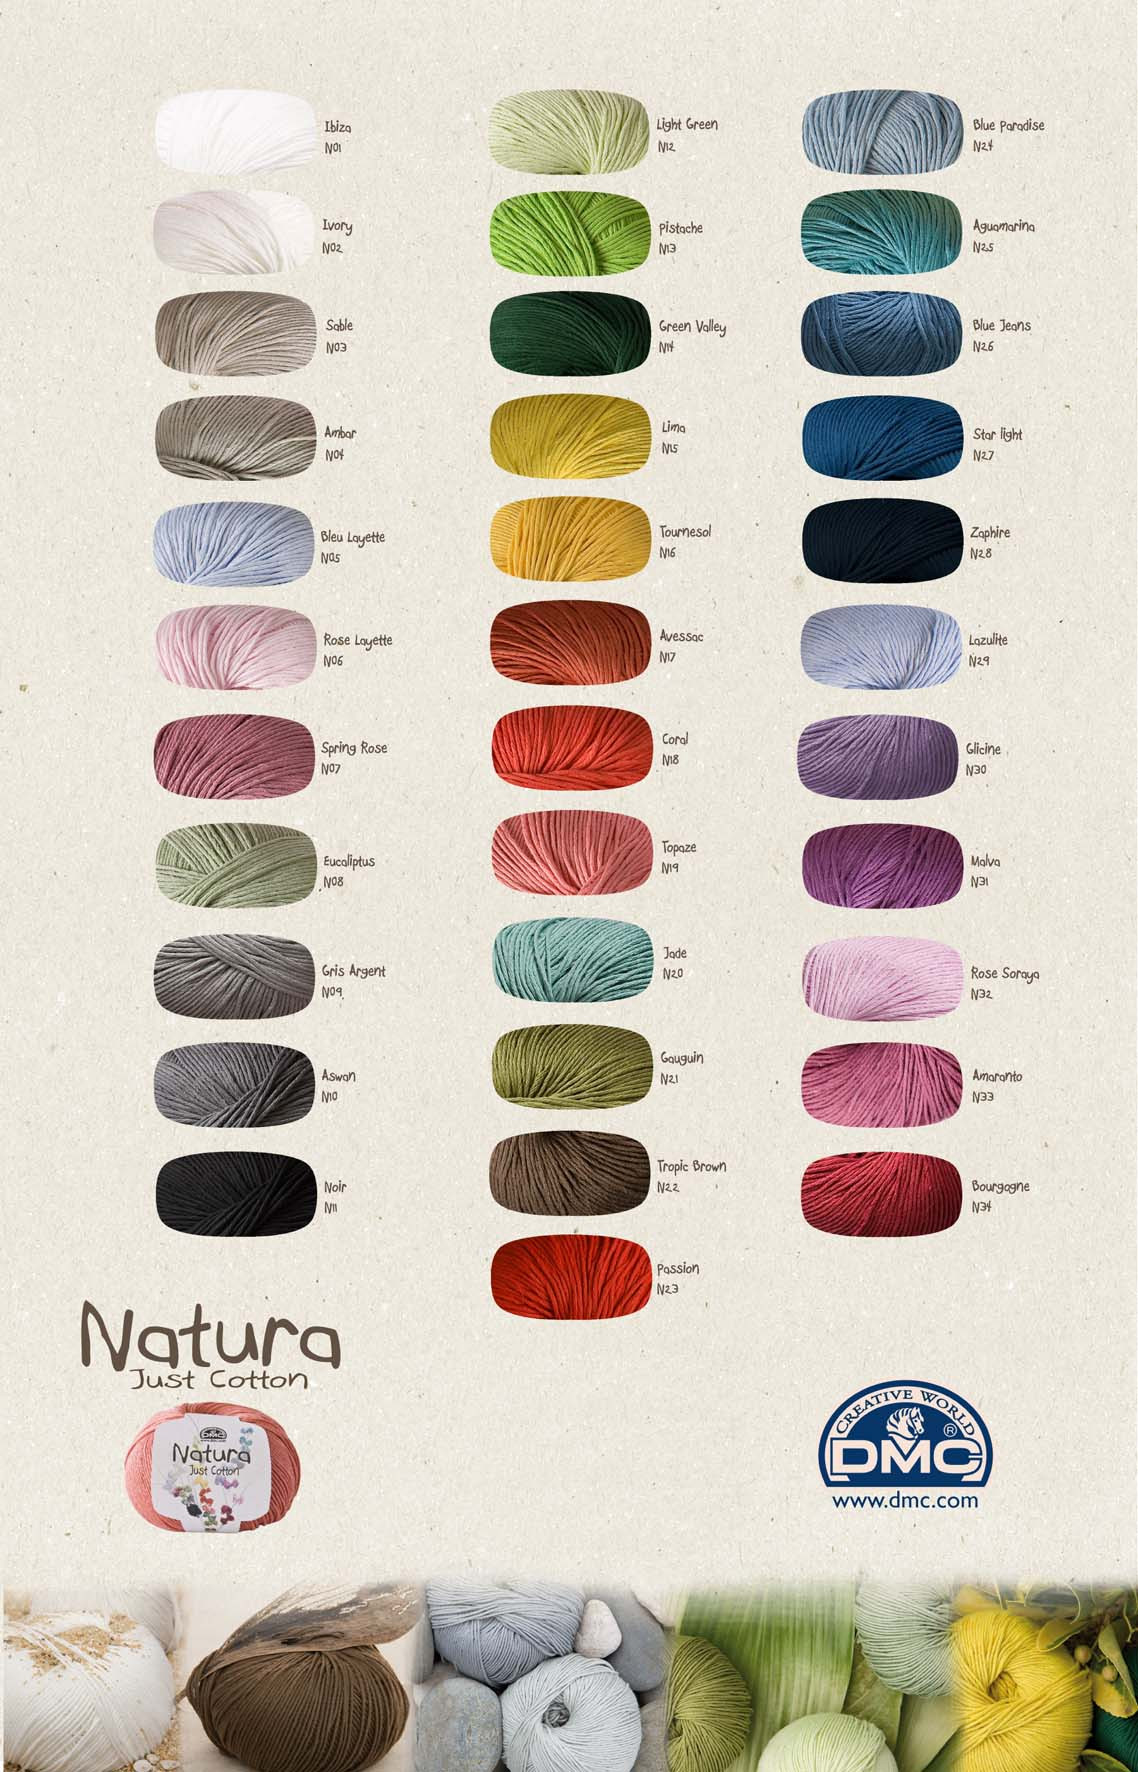 Dmc Natura Just Cotton Inspirational Dmc Natura Just Cotton Of Amazing 45 Ideas Dmc Natura Just Cotton